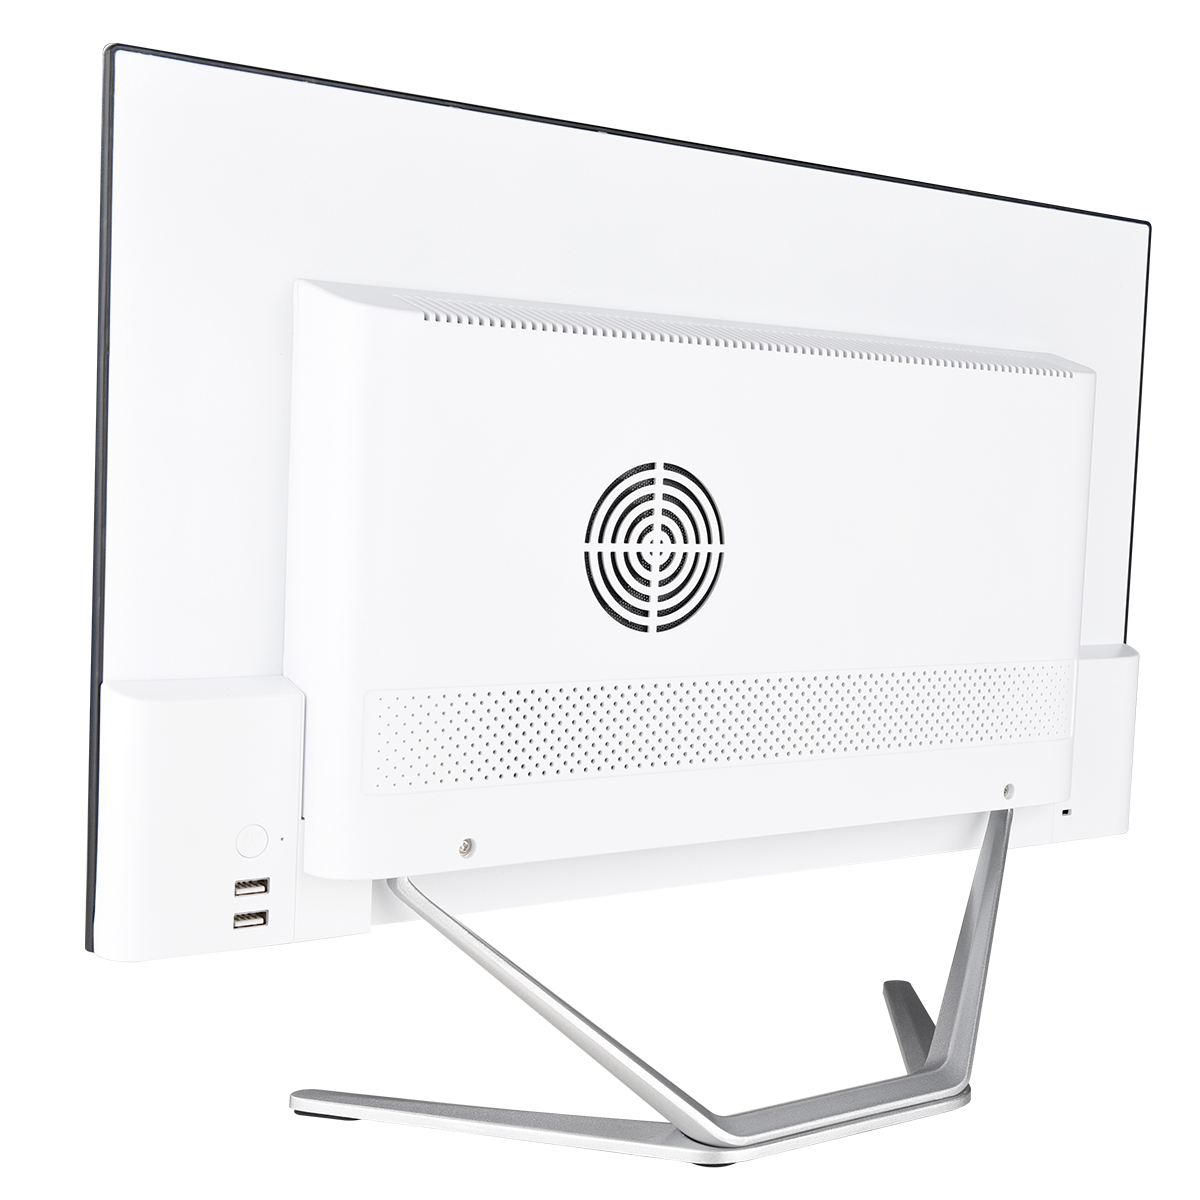 "hot-selling SZMZ All-in-One desktop computer with 23.8"" borderless display"